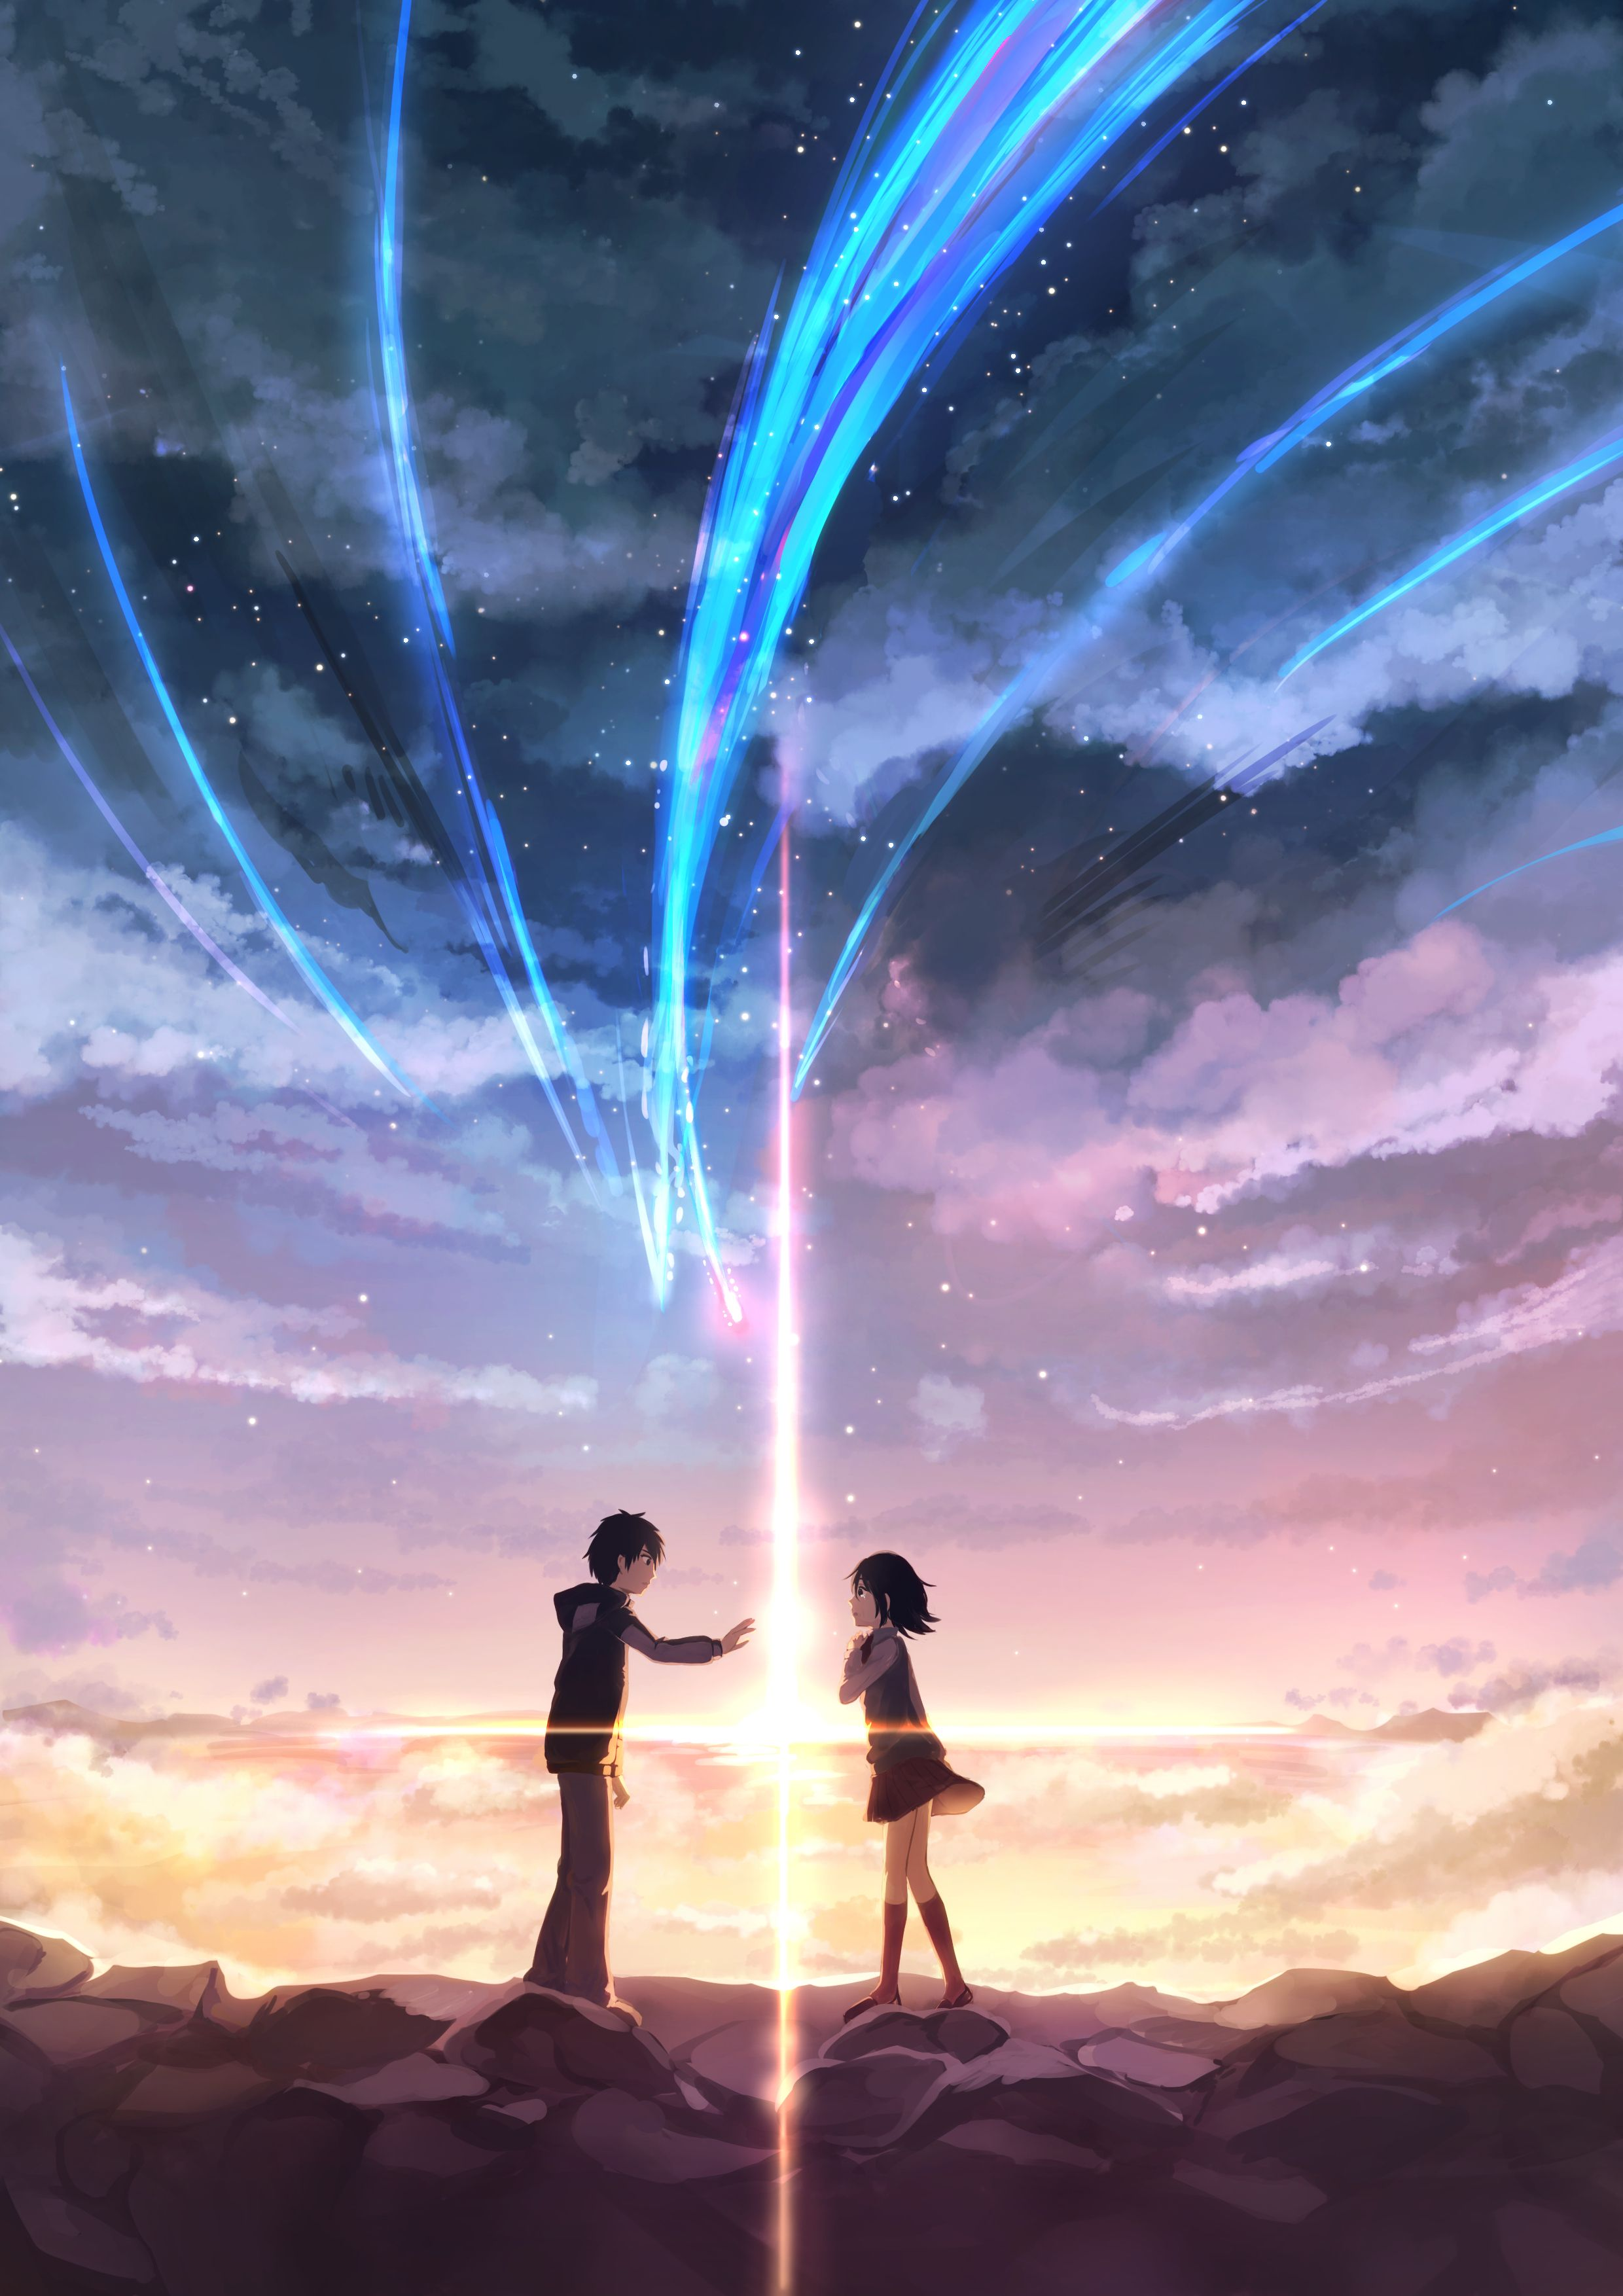 58679621 P0 Manga Anime Art Mangas Your Name Wallpaper